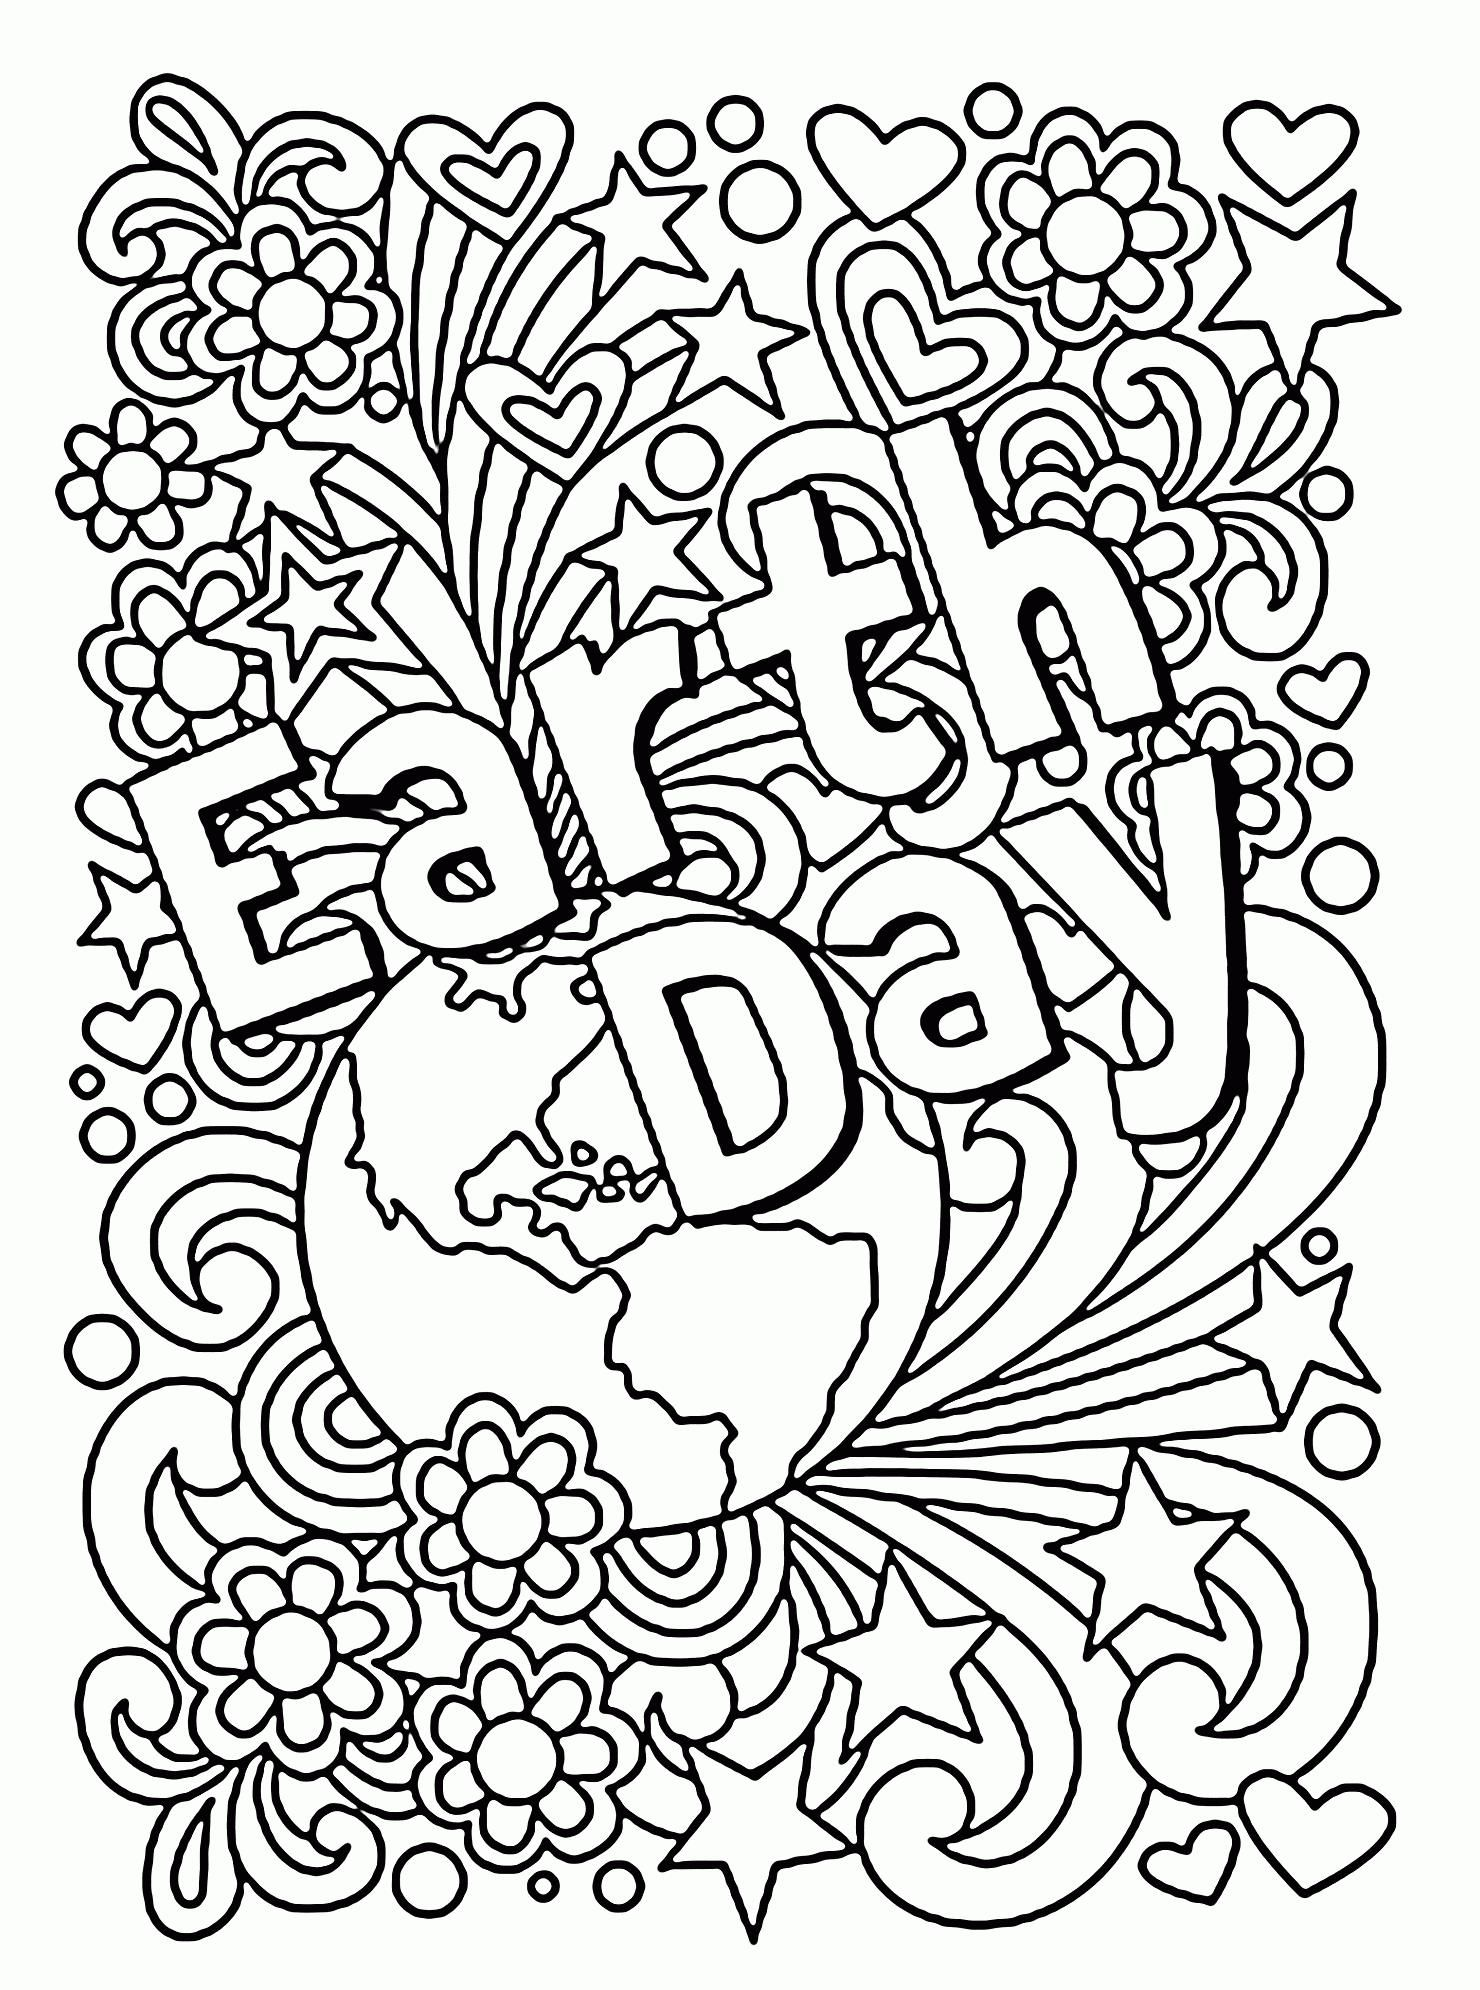 42 Free Printable Earth Day Colouring Sheets In 2020 Earth Day Coloring Pages Coloring Pages Earth Day